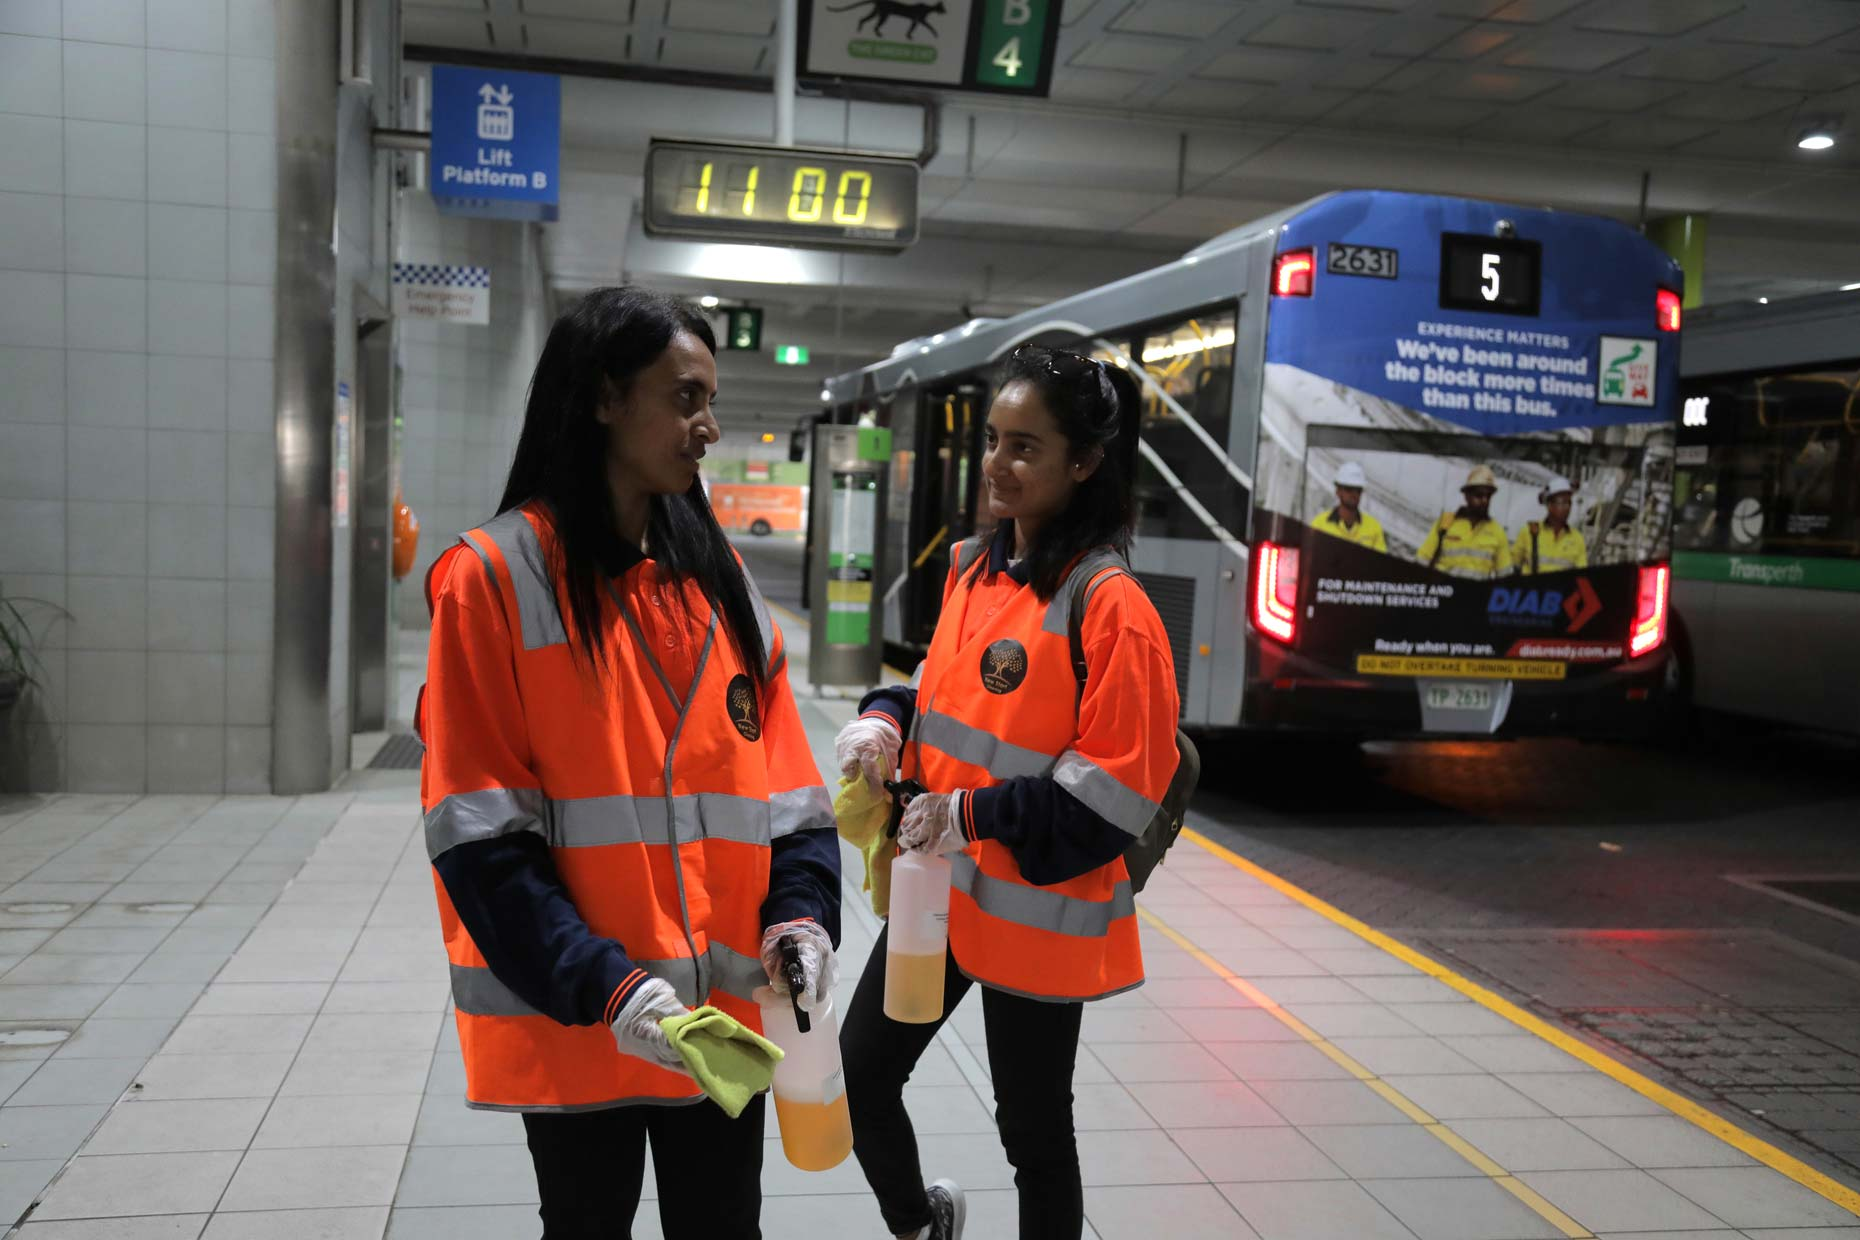 Cleaners employed to sanitise and disinfect at Elizabeth Quay bus depot during COVID-19 lockdown